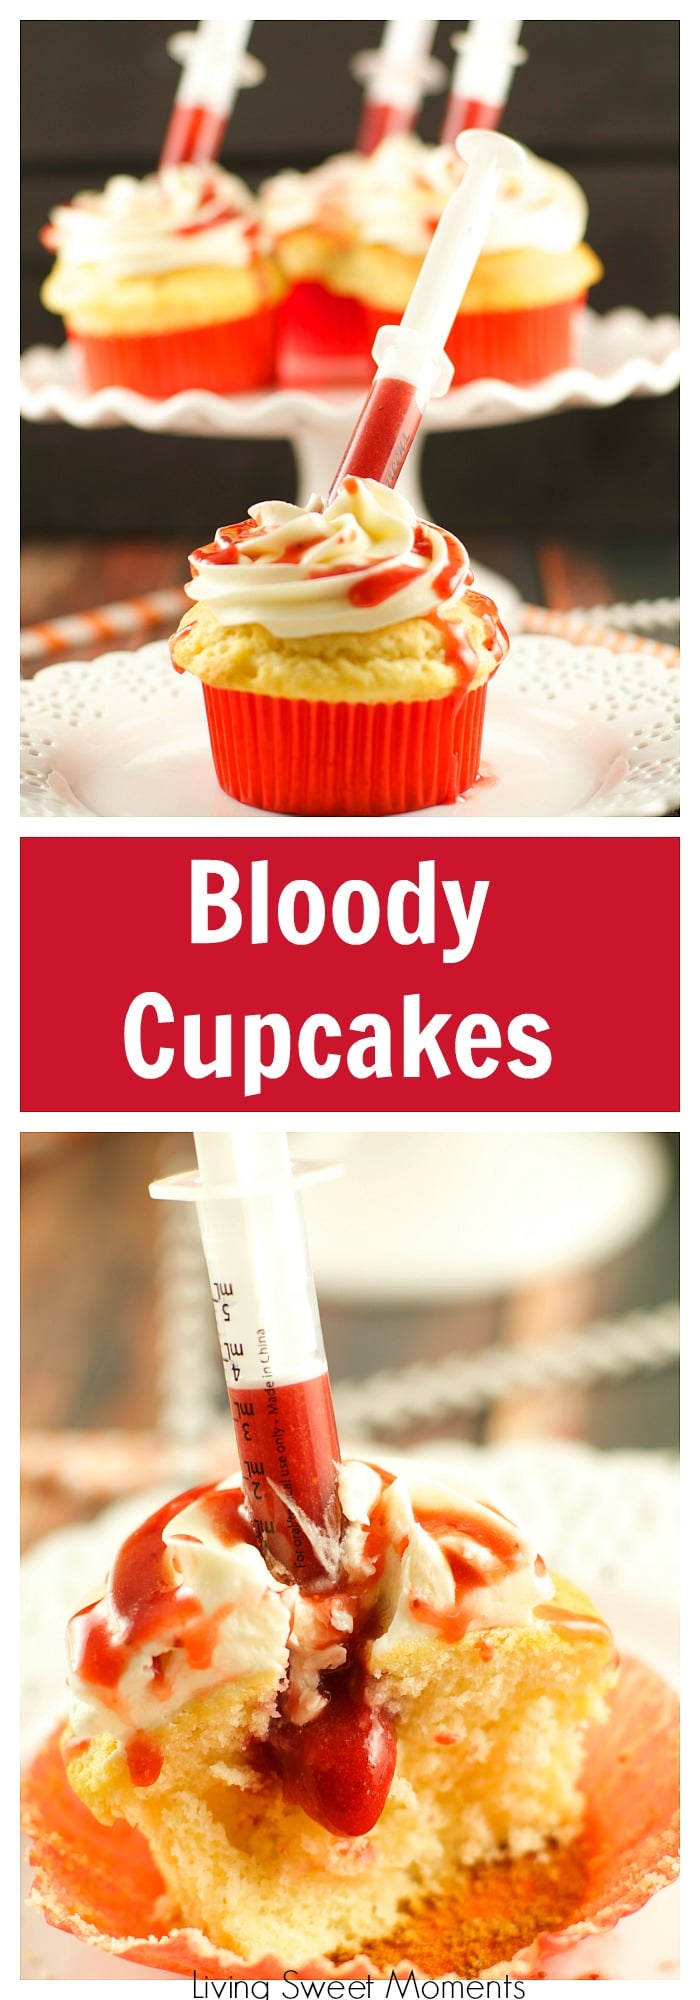 Bloody Cupcakes – the perfect Halloween Treat for a party! Vanilla cupcakes with vanilla buttercream filled with strawberry coulis. Decadent and original!